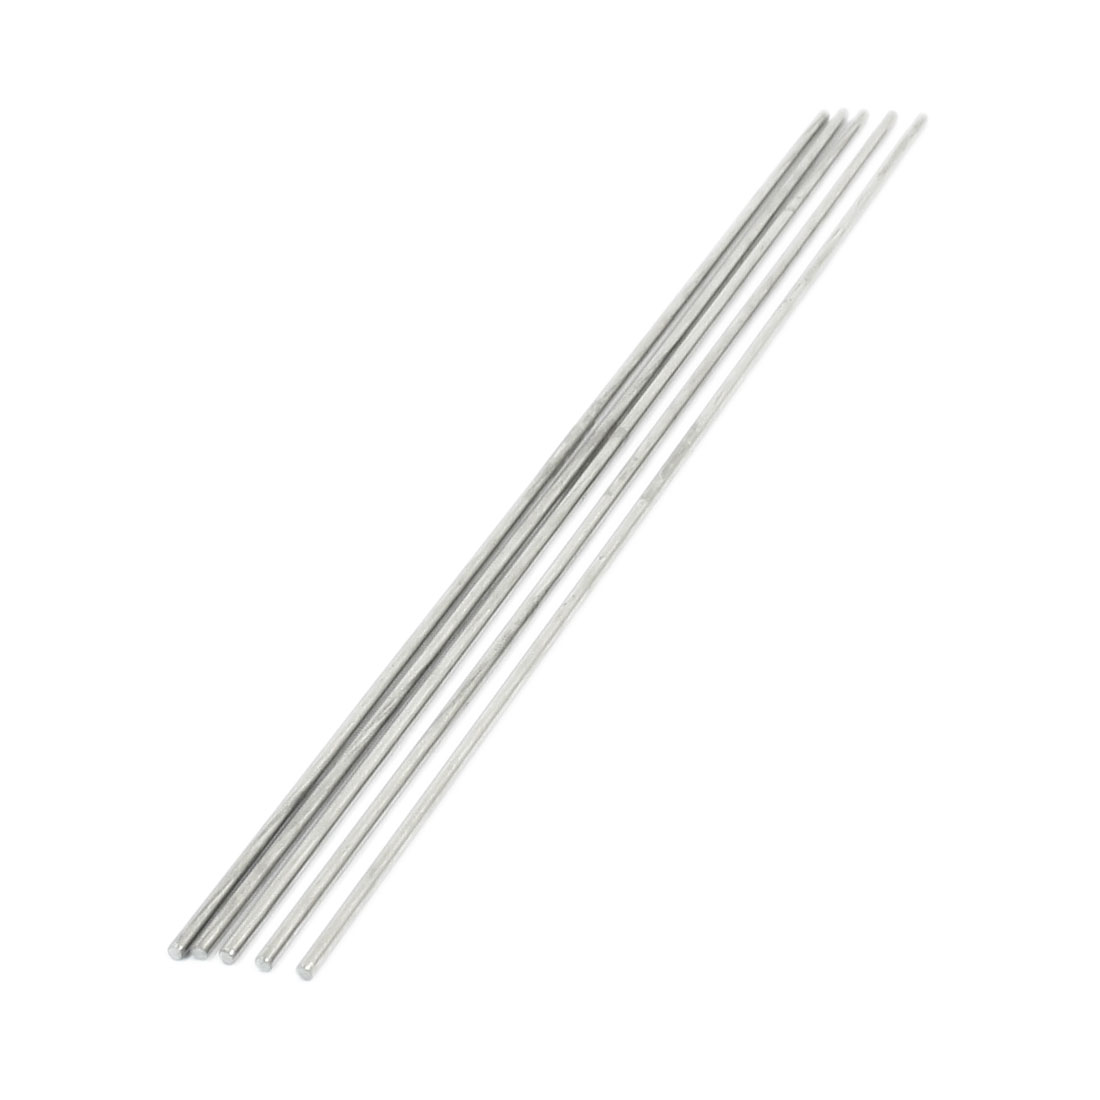 5Pcs 250mm x 2.5mm Stainless Steel Motion Axle Circular Round Rod Bar